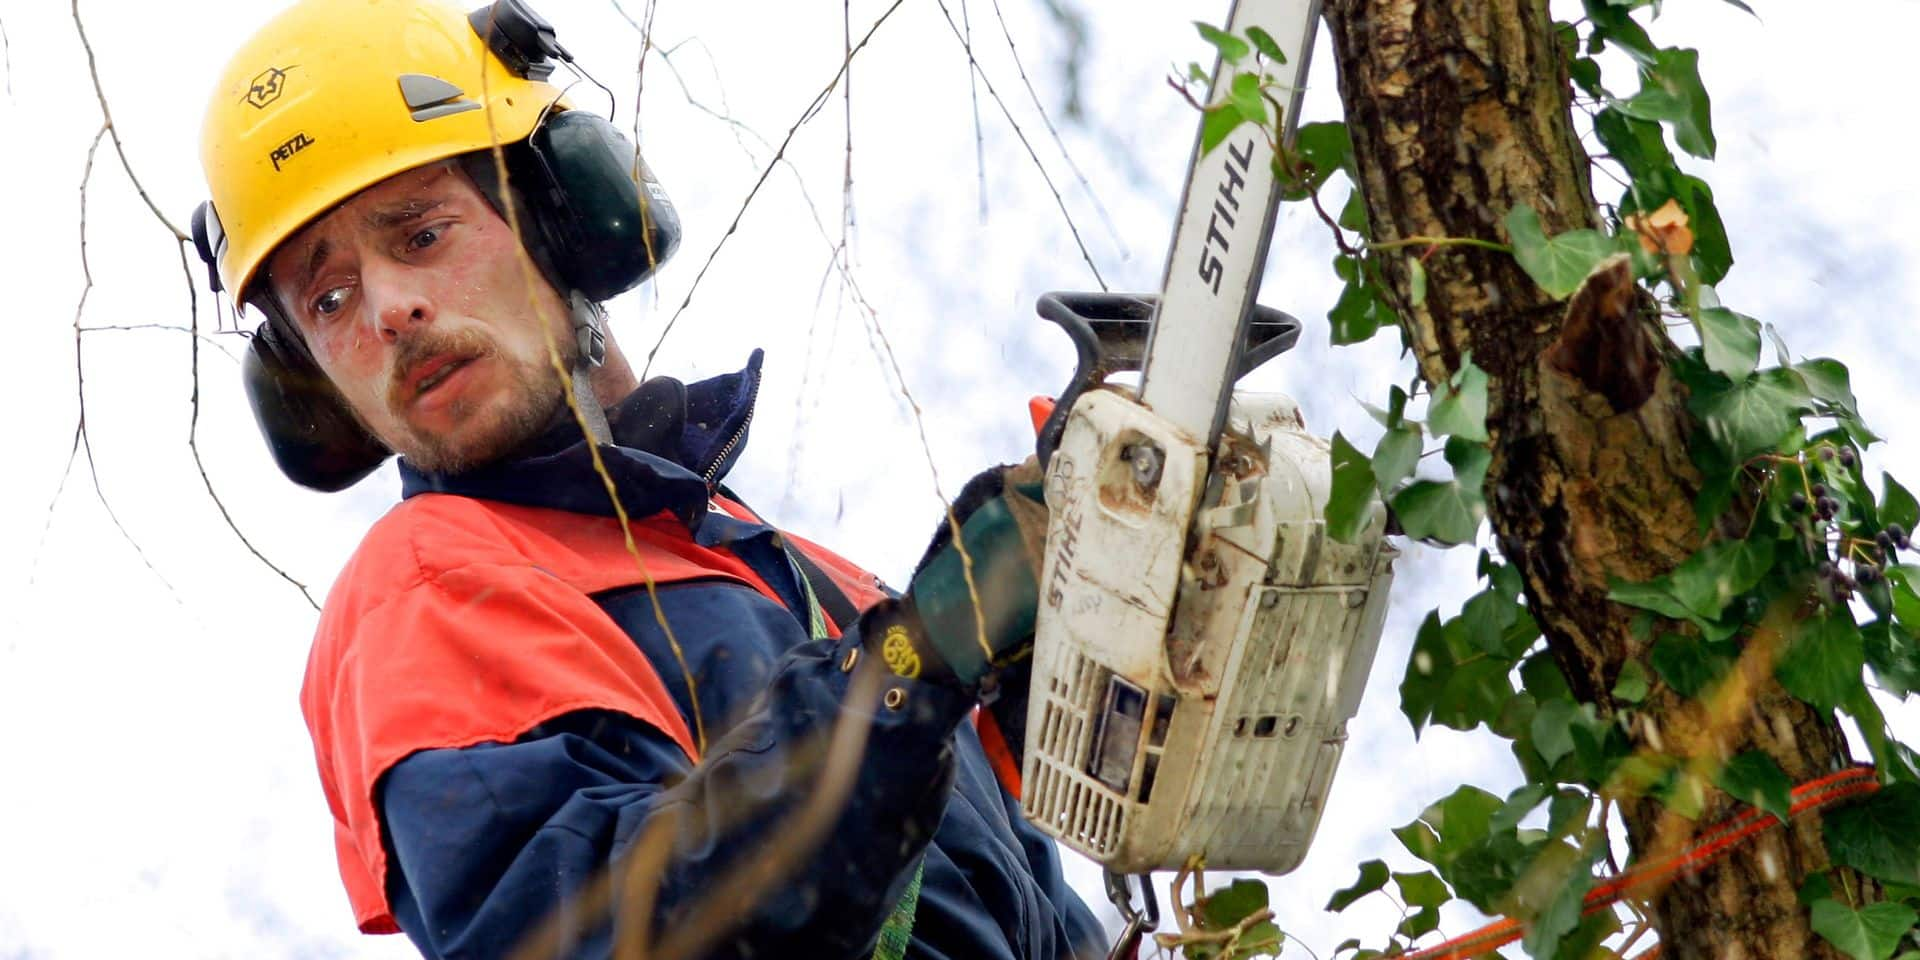 Tree Surgery. Tree sugeon using a chain to trim the branches of a tree.